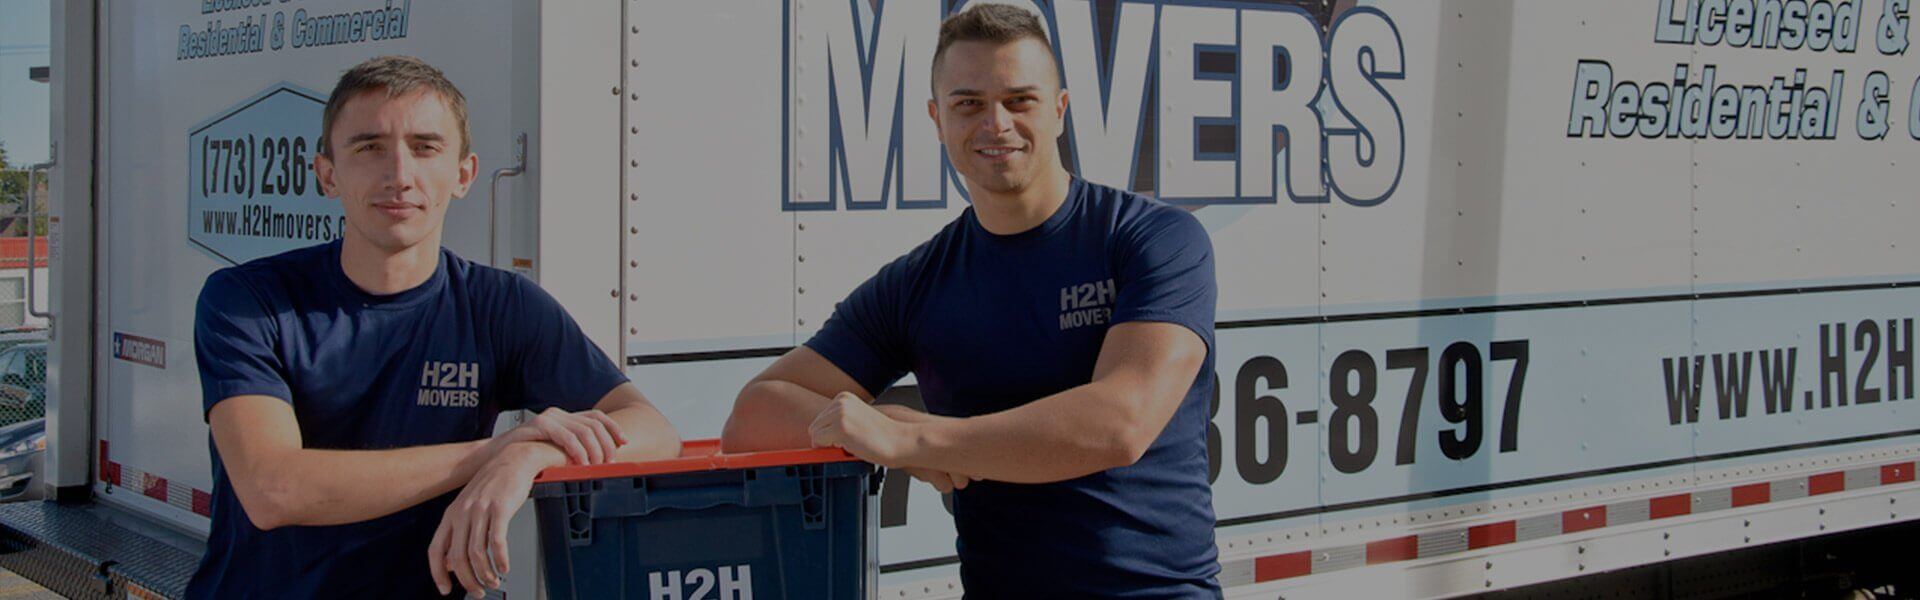 The most preferable moving services